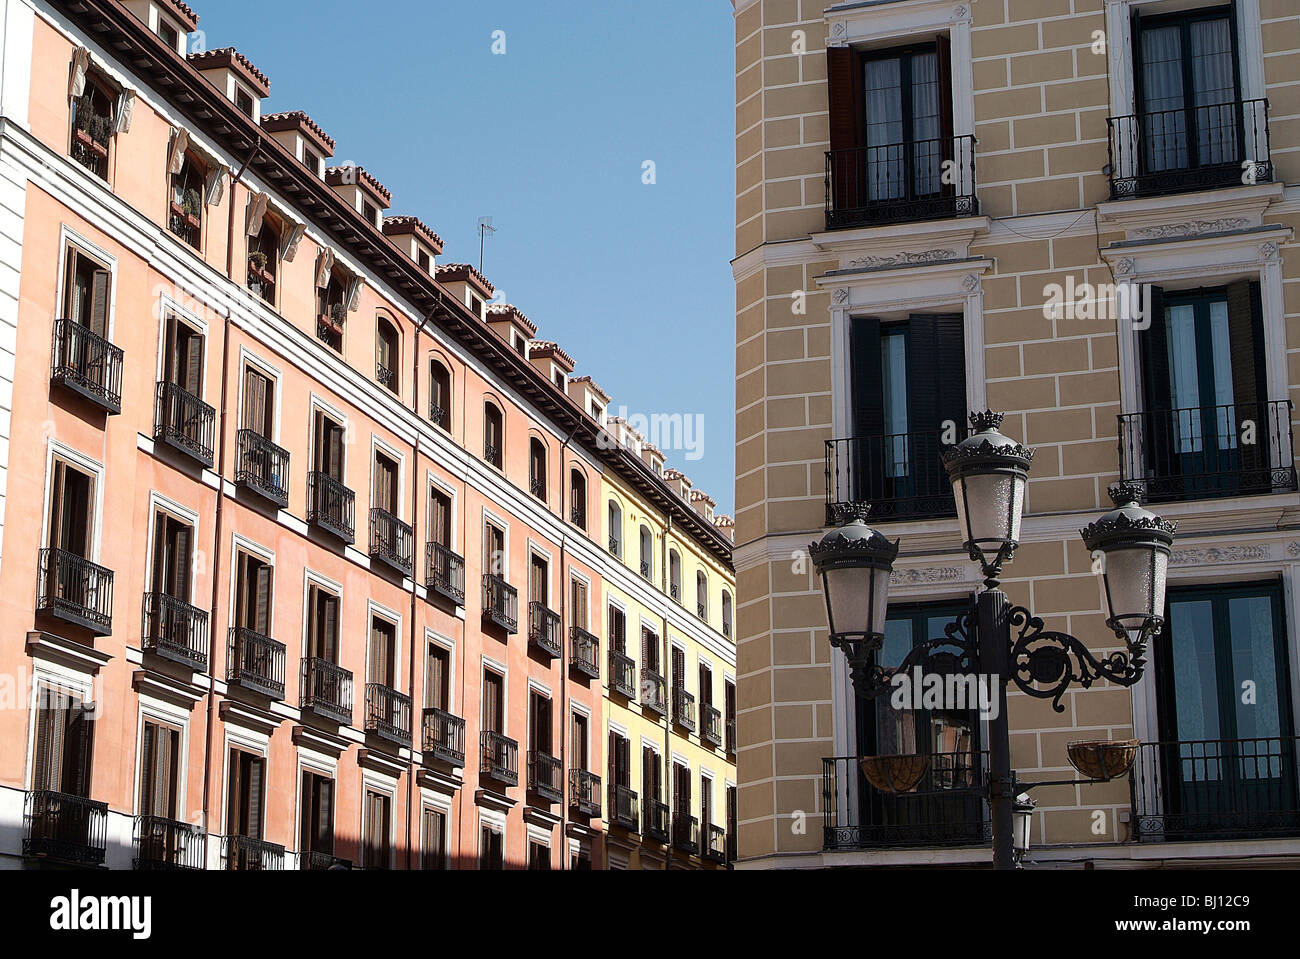 Row of houses in the old town, Madrid, Spain - Stock Image